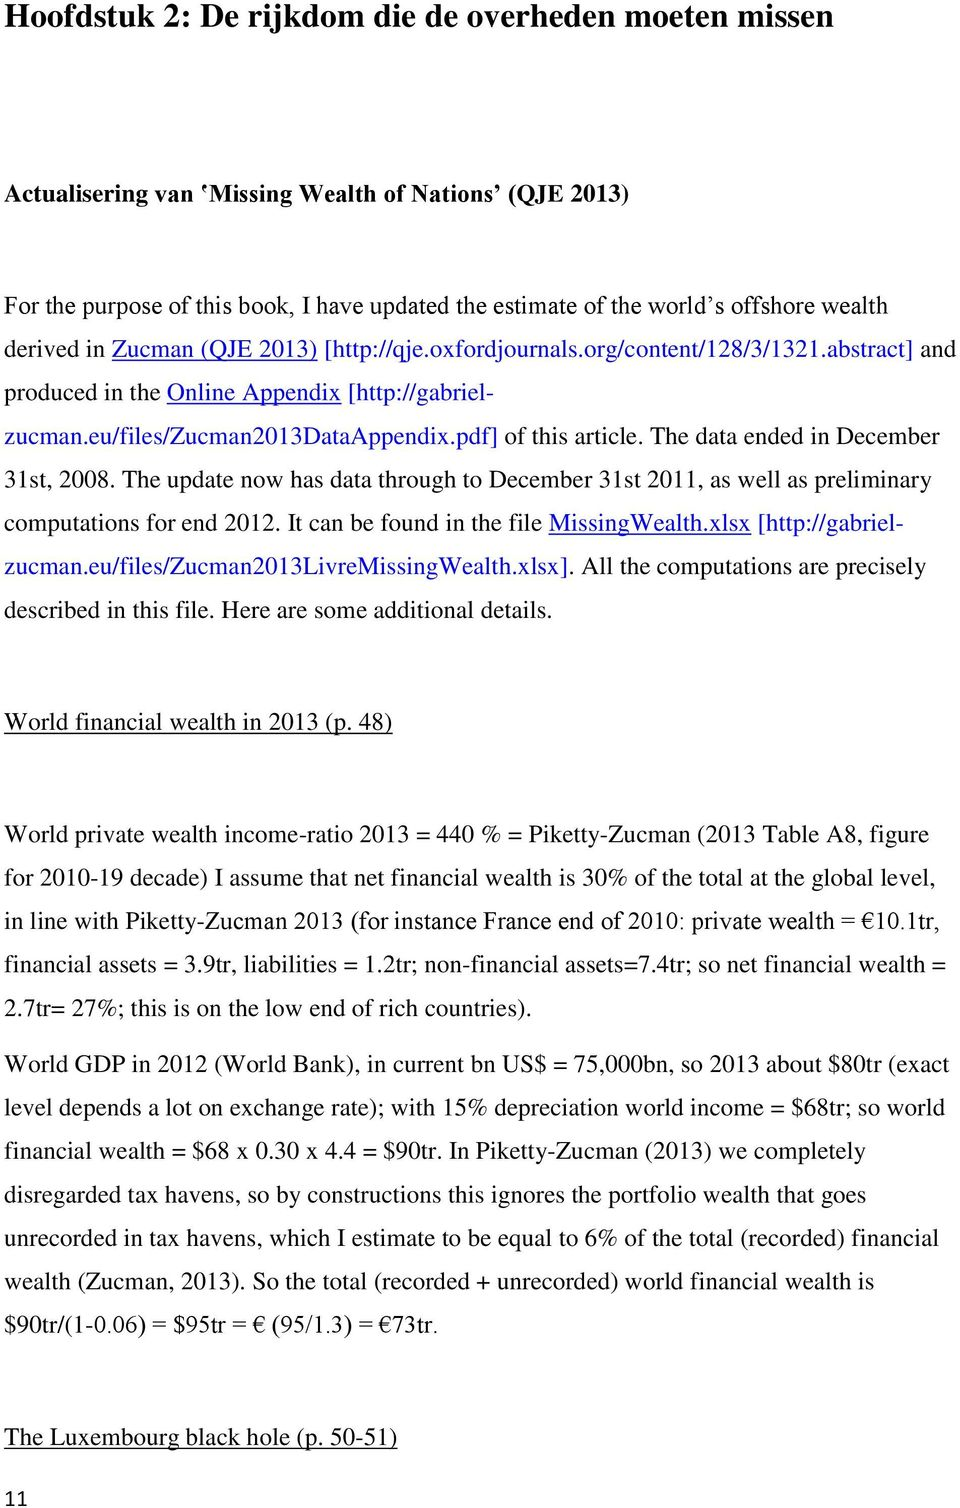 The data ended in December 31st, 2008. The update now has data through to December 31st 2011, as well as preliminary computations for end 2012. It can be found in the file MissingWealth.